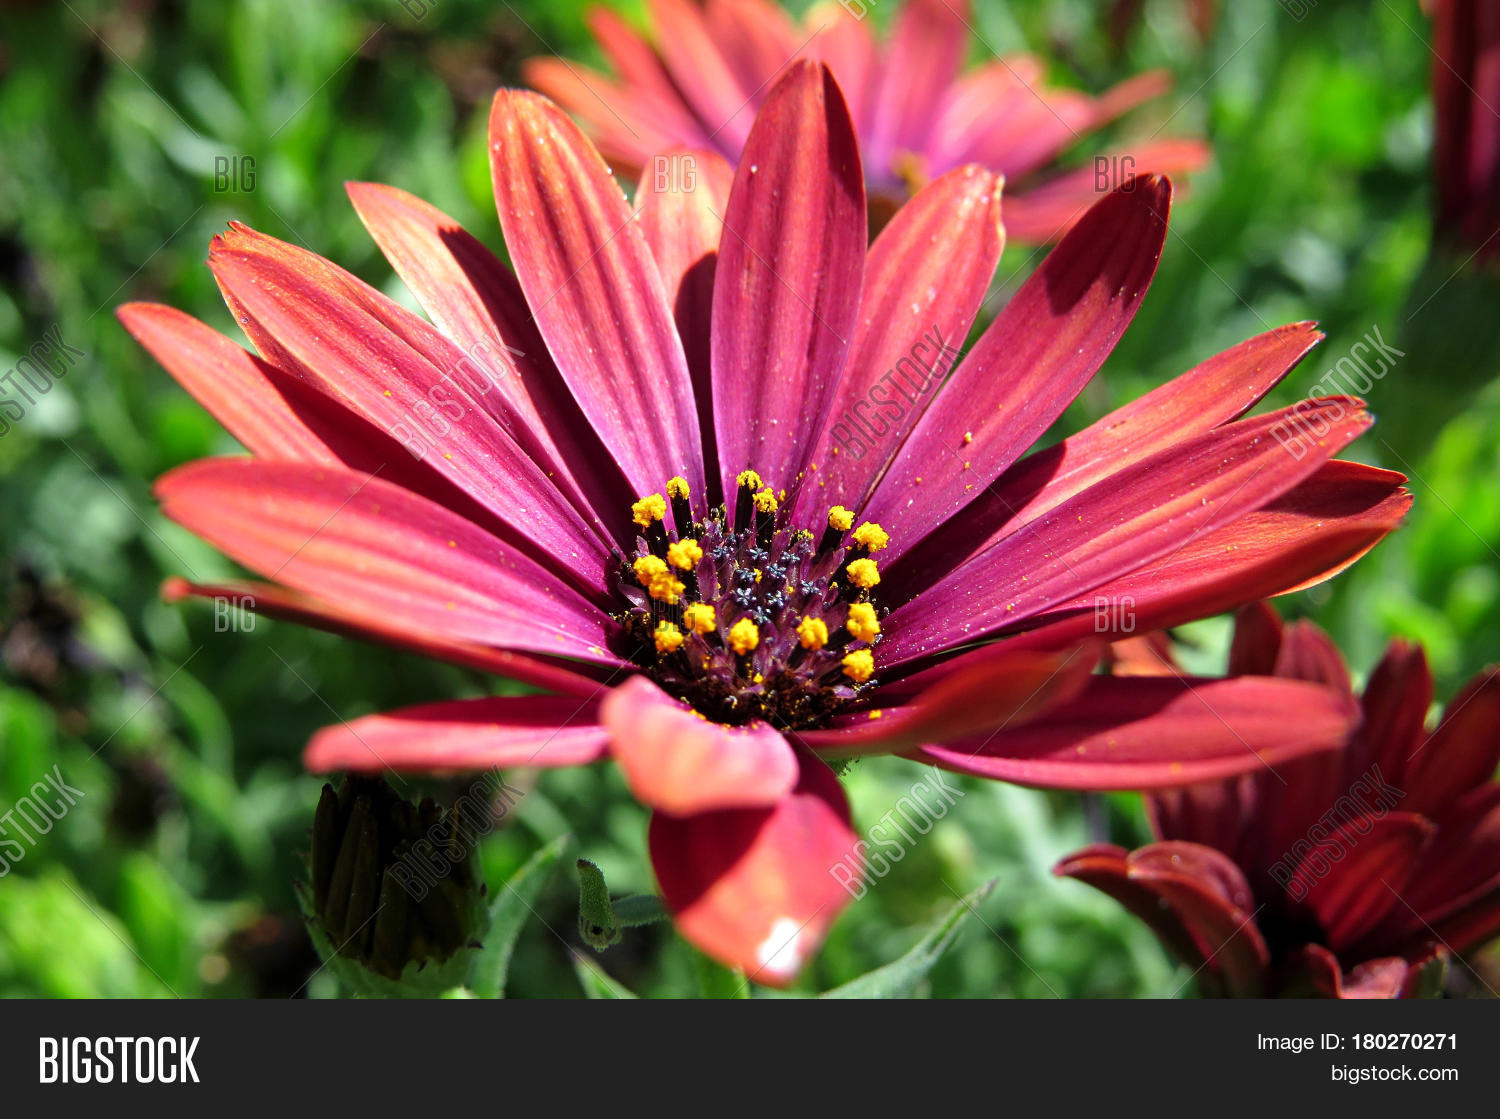 Gazania asteraceae image photo free trial bigstock gazania asteraceae flowers daisy like flower orange red purple burgundy petals in the garden izmirmasajfo